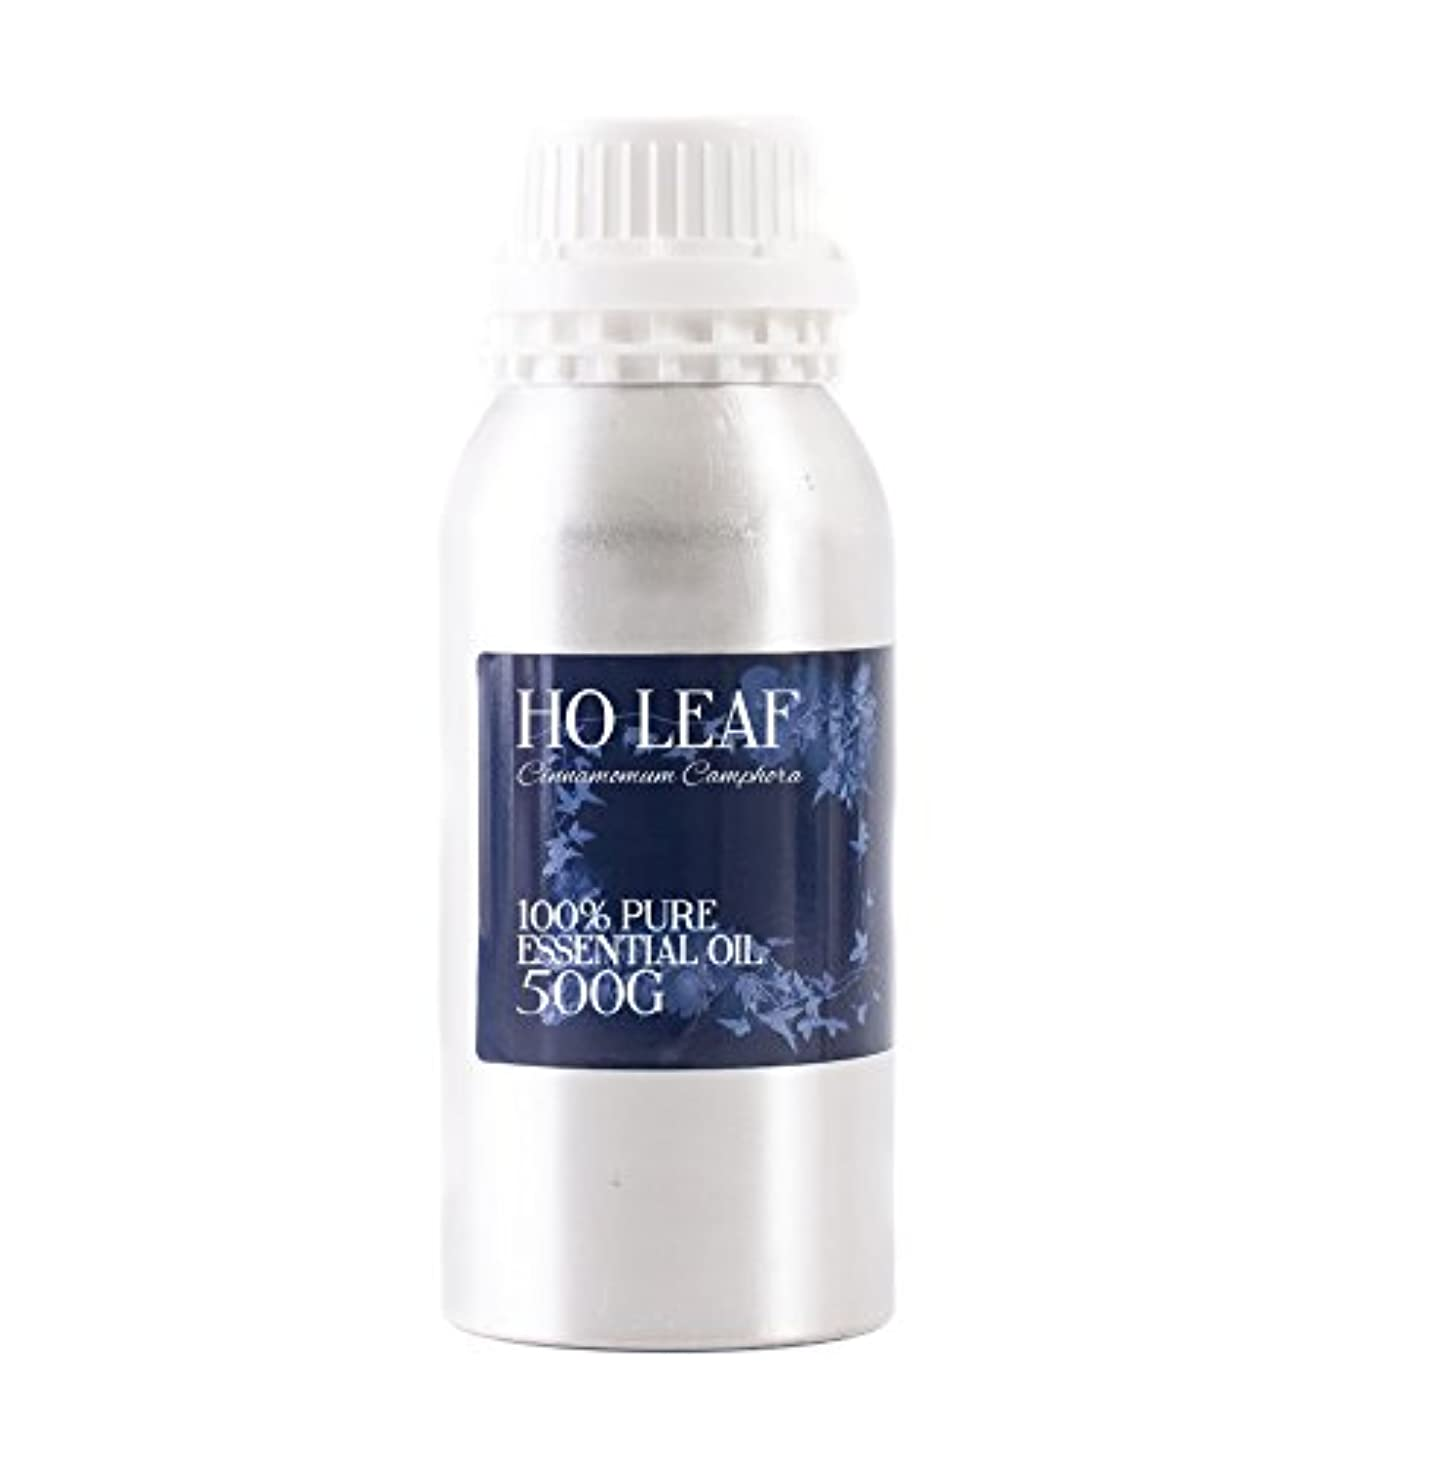 メガロポリス変形収容するMystic Moments | Ho Leaf Essential Oil - 500g - 100% Pure